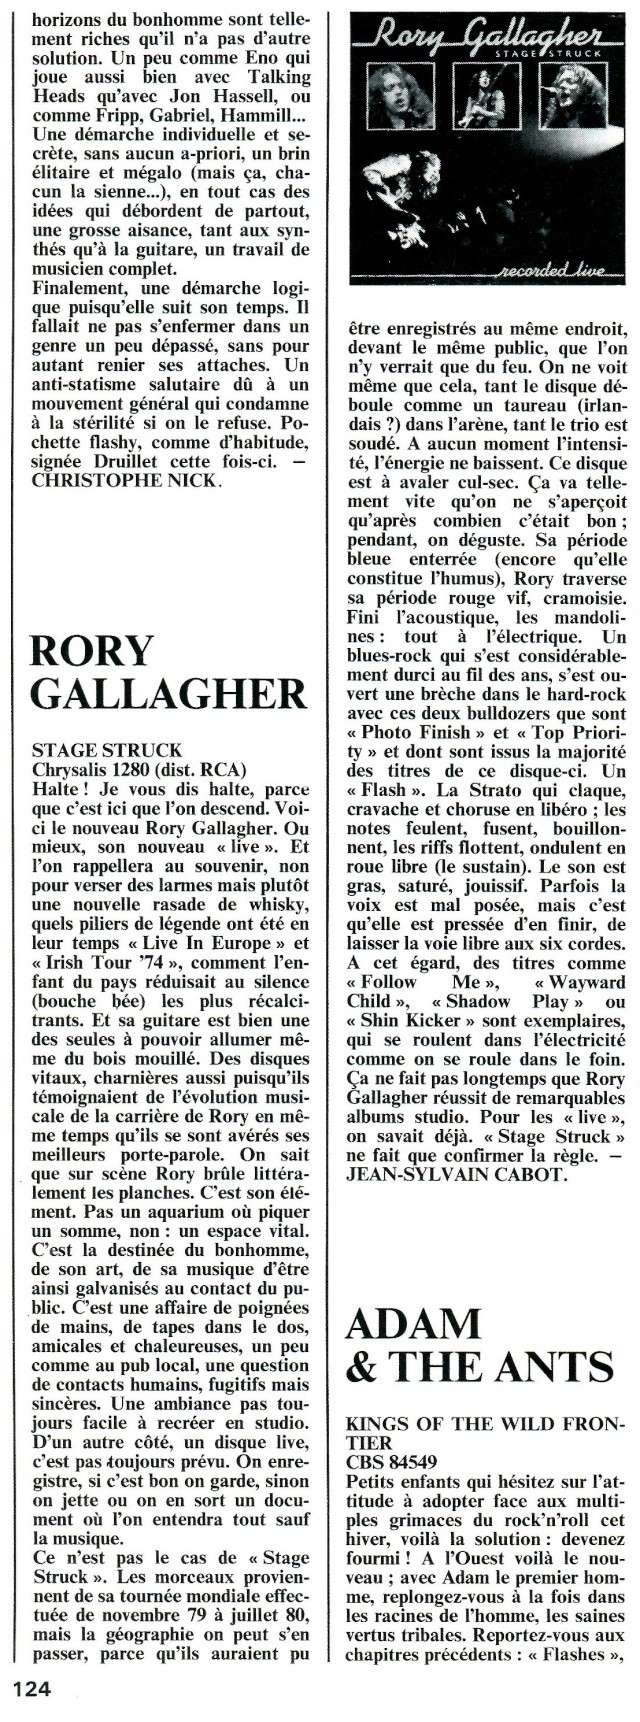 Rory Gallagher - Stage Struck (1980) Rnf_1639